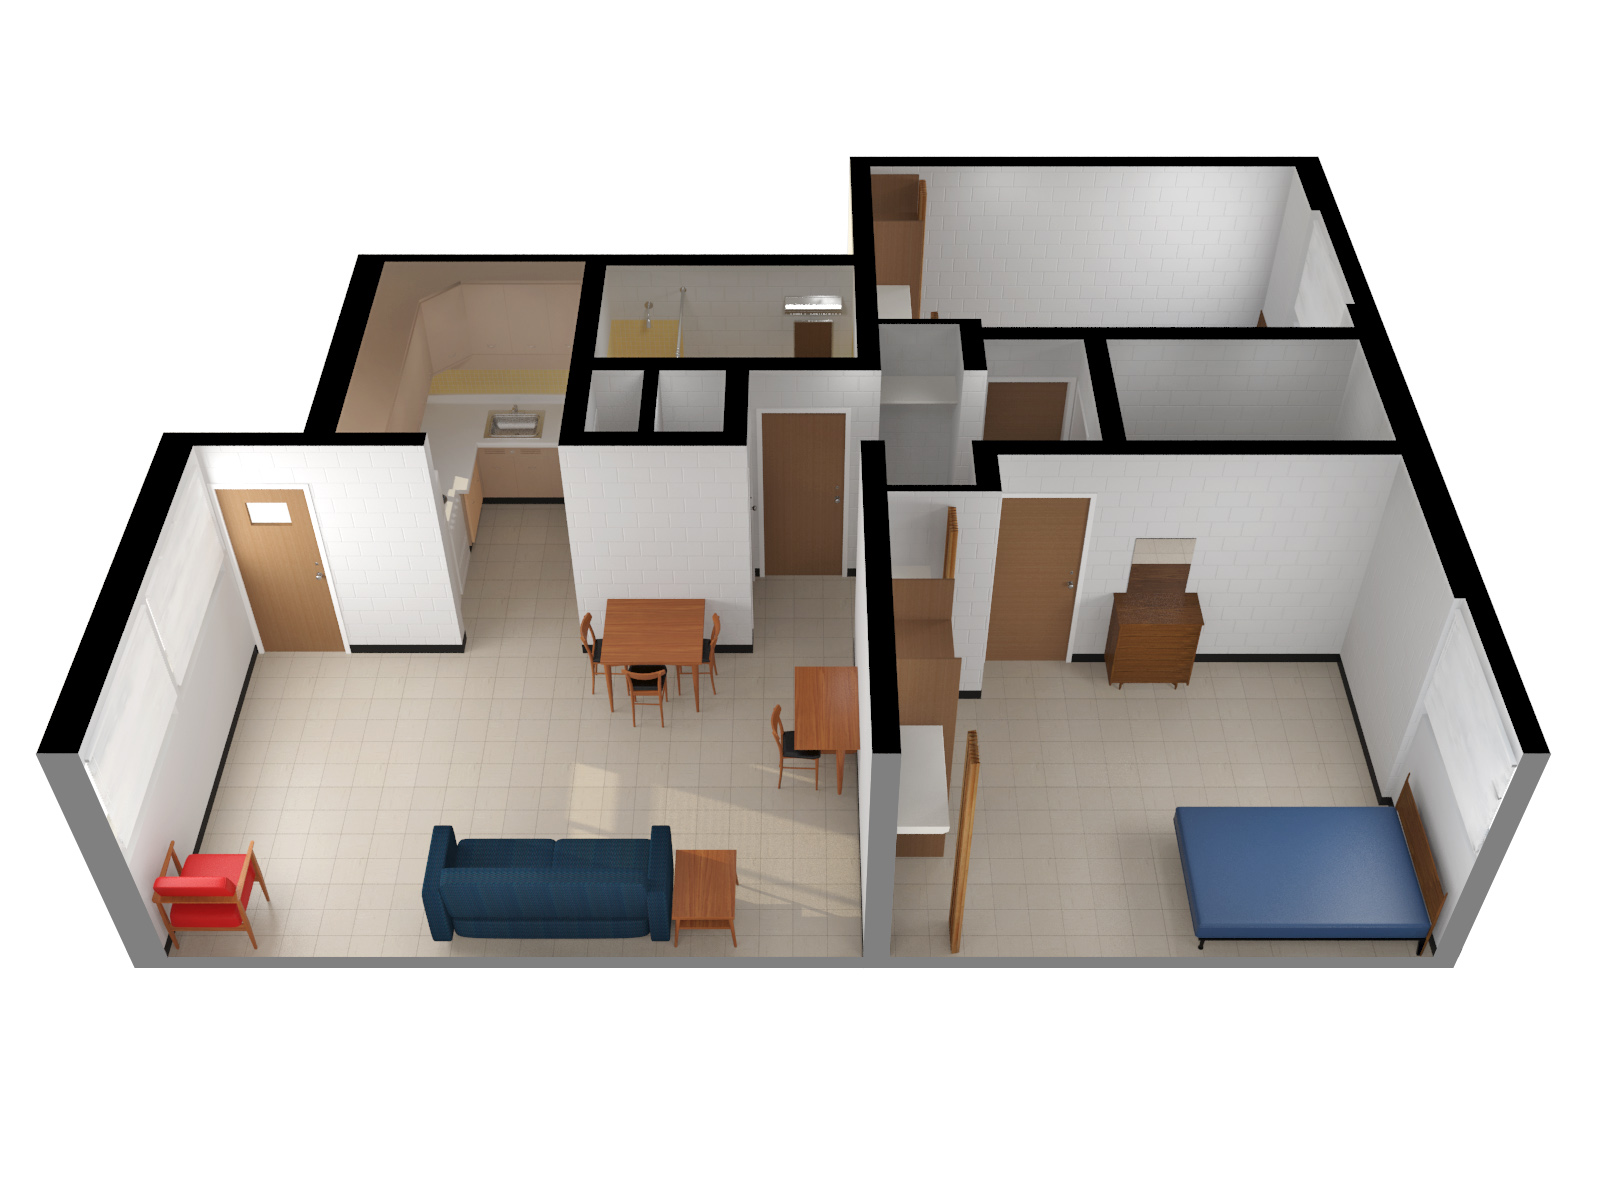 2 Bedroom Furnished Apartment. Orchard Downs Layouts  University Housing at the University of